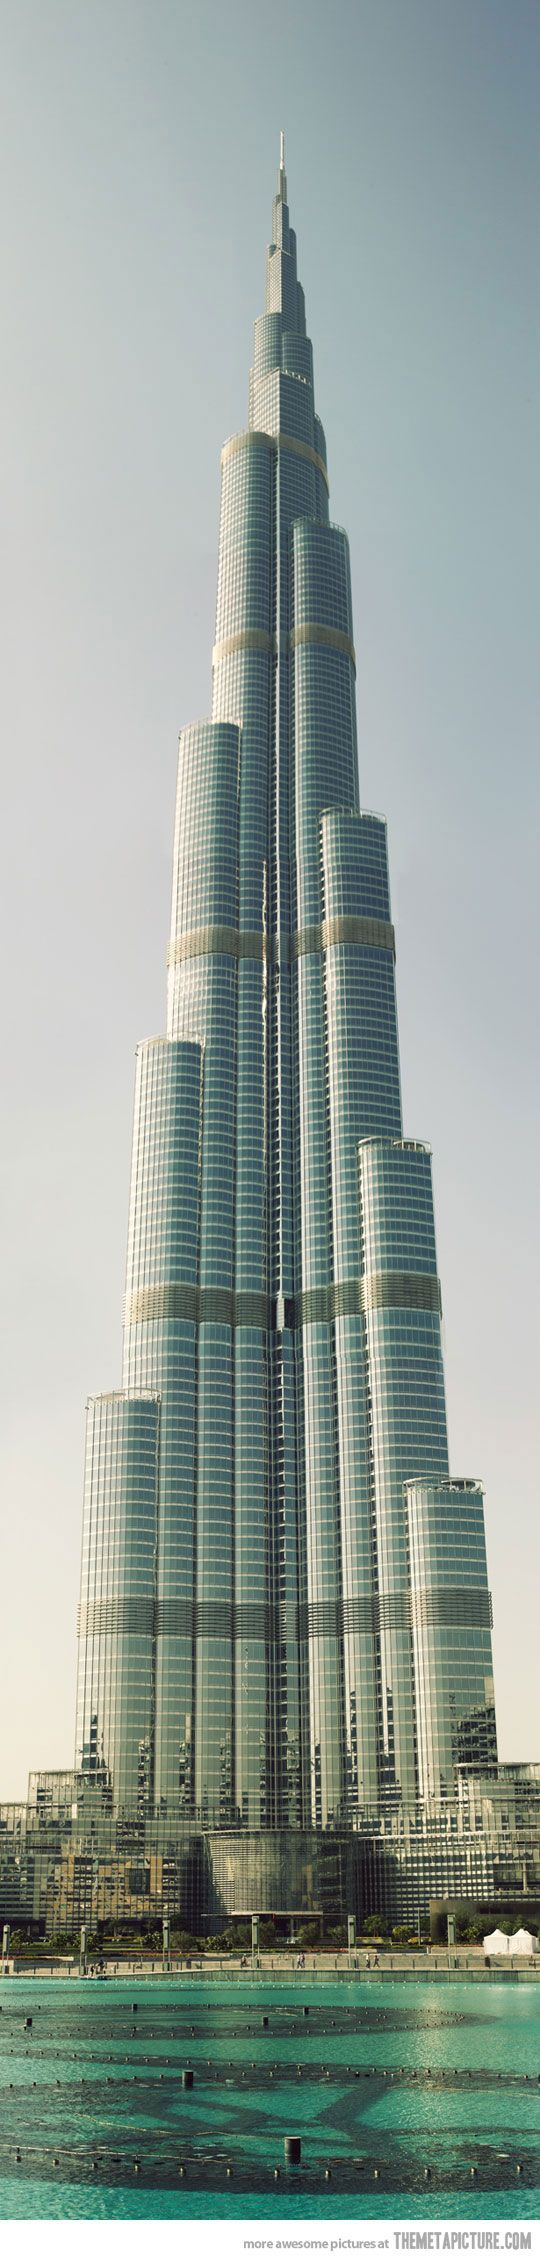 Burj Khalifa: The tallest building in the world (Dubai). More than 160 stories. It has also broken two other impressive records: tallest structure, previously held by the KVLY-TV mast in Blanchard, ND, and tallest free-standing structure, previously held by Torontos CN Tower. #dubai #uae